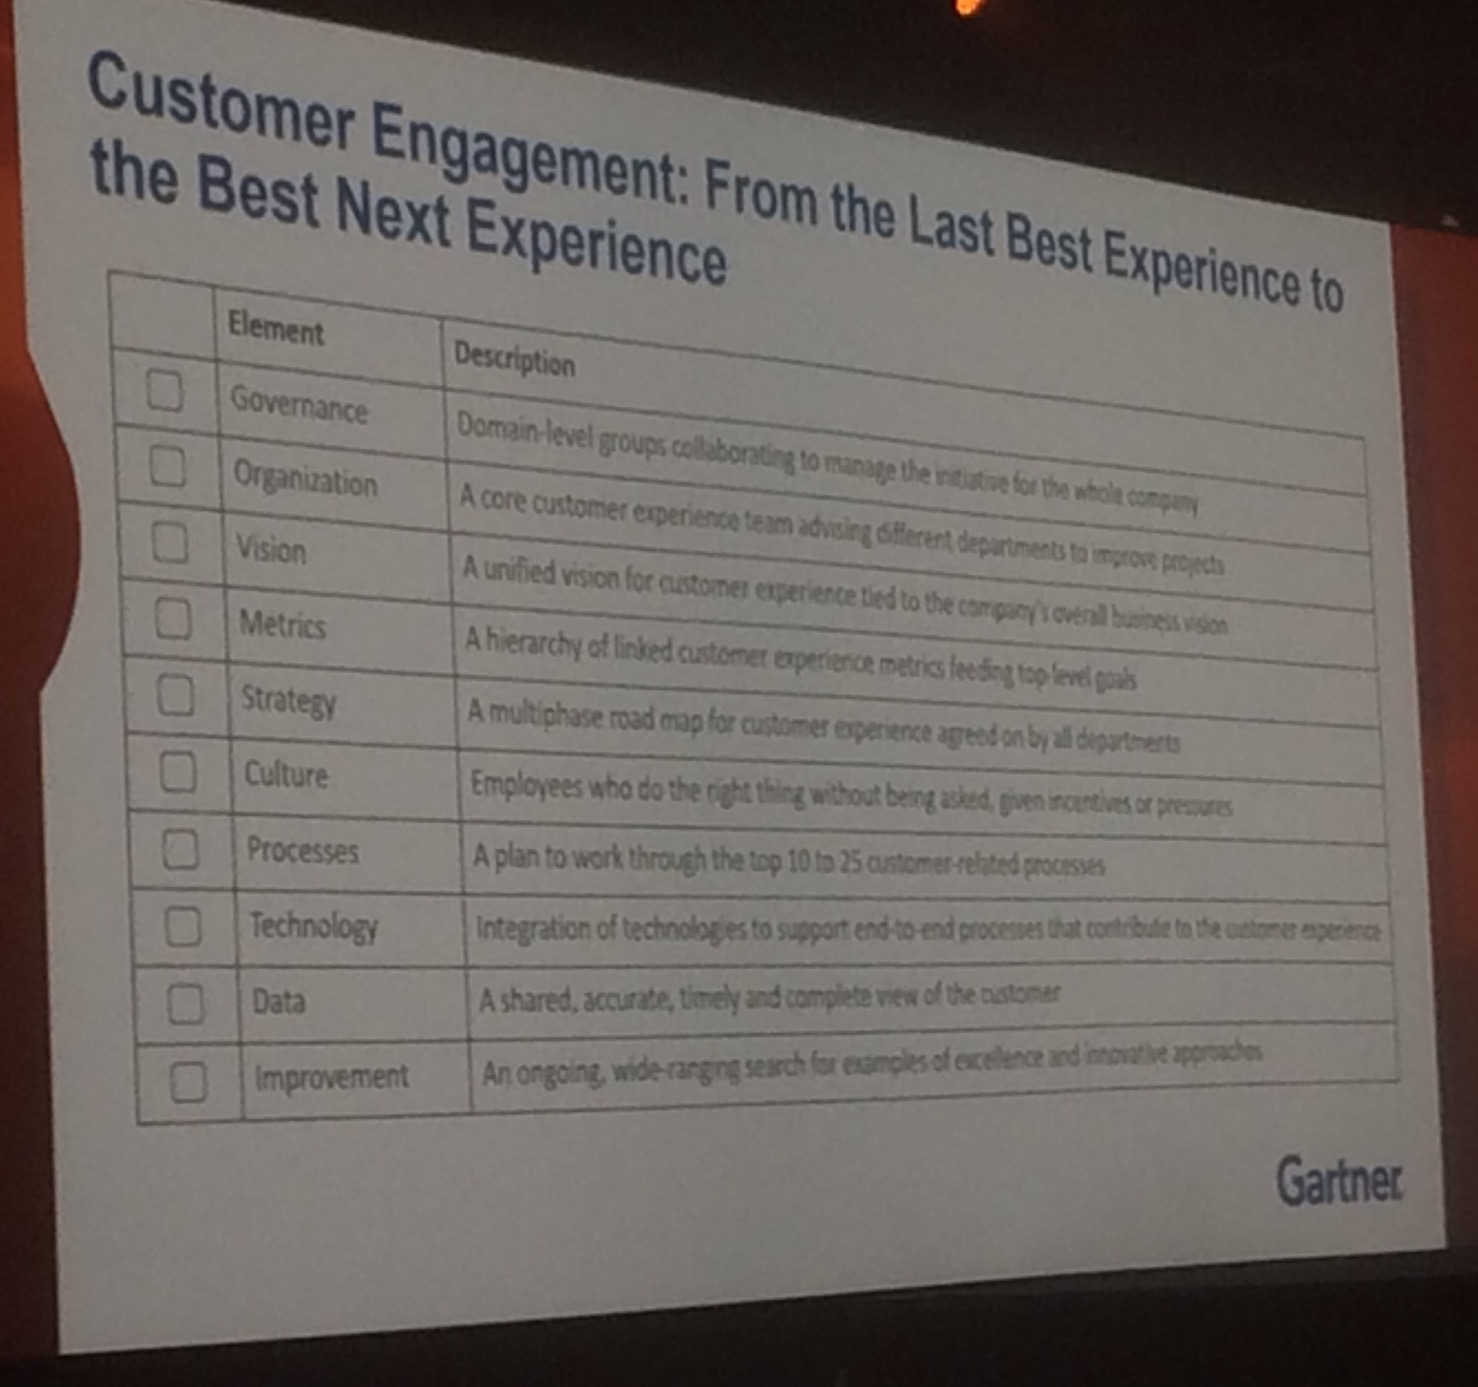 Customer Experience is the New Battleground